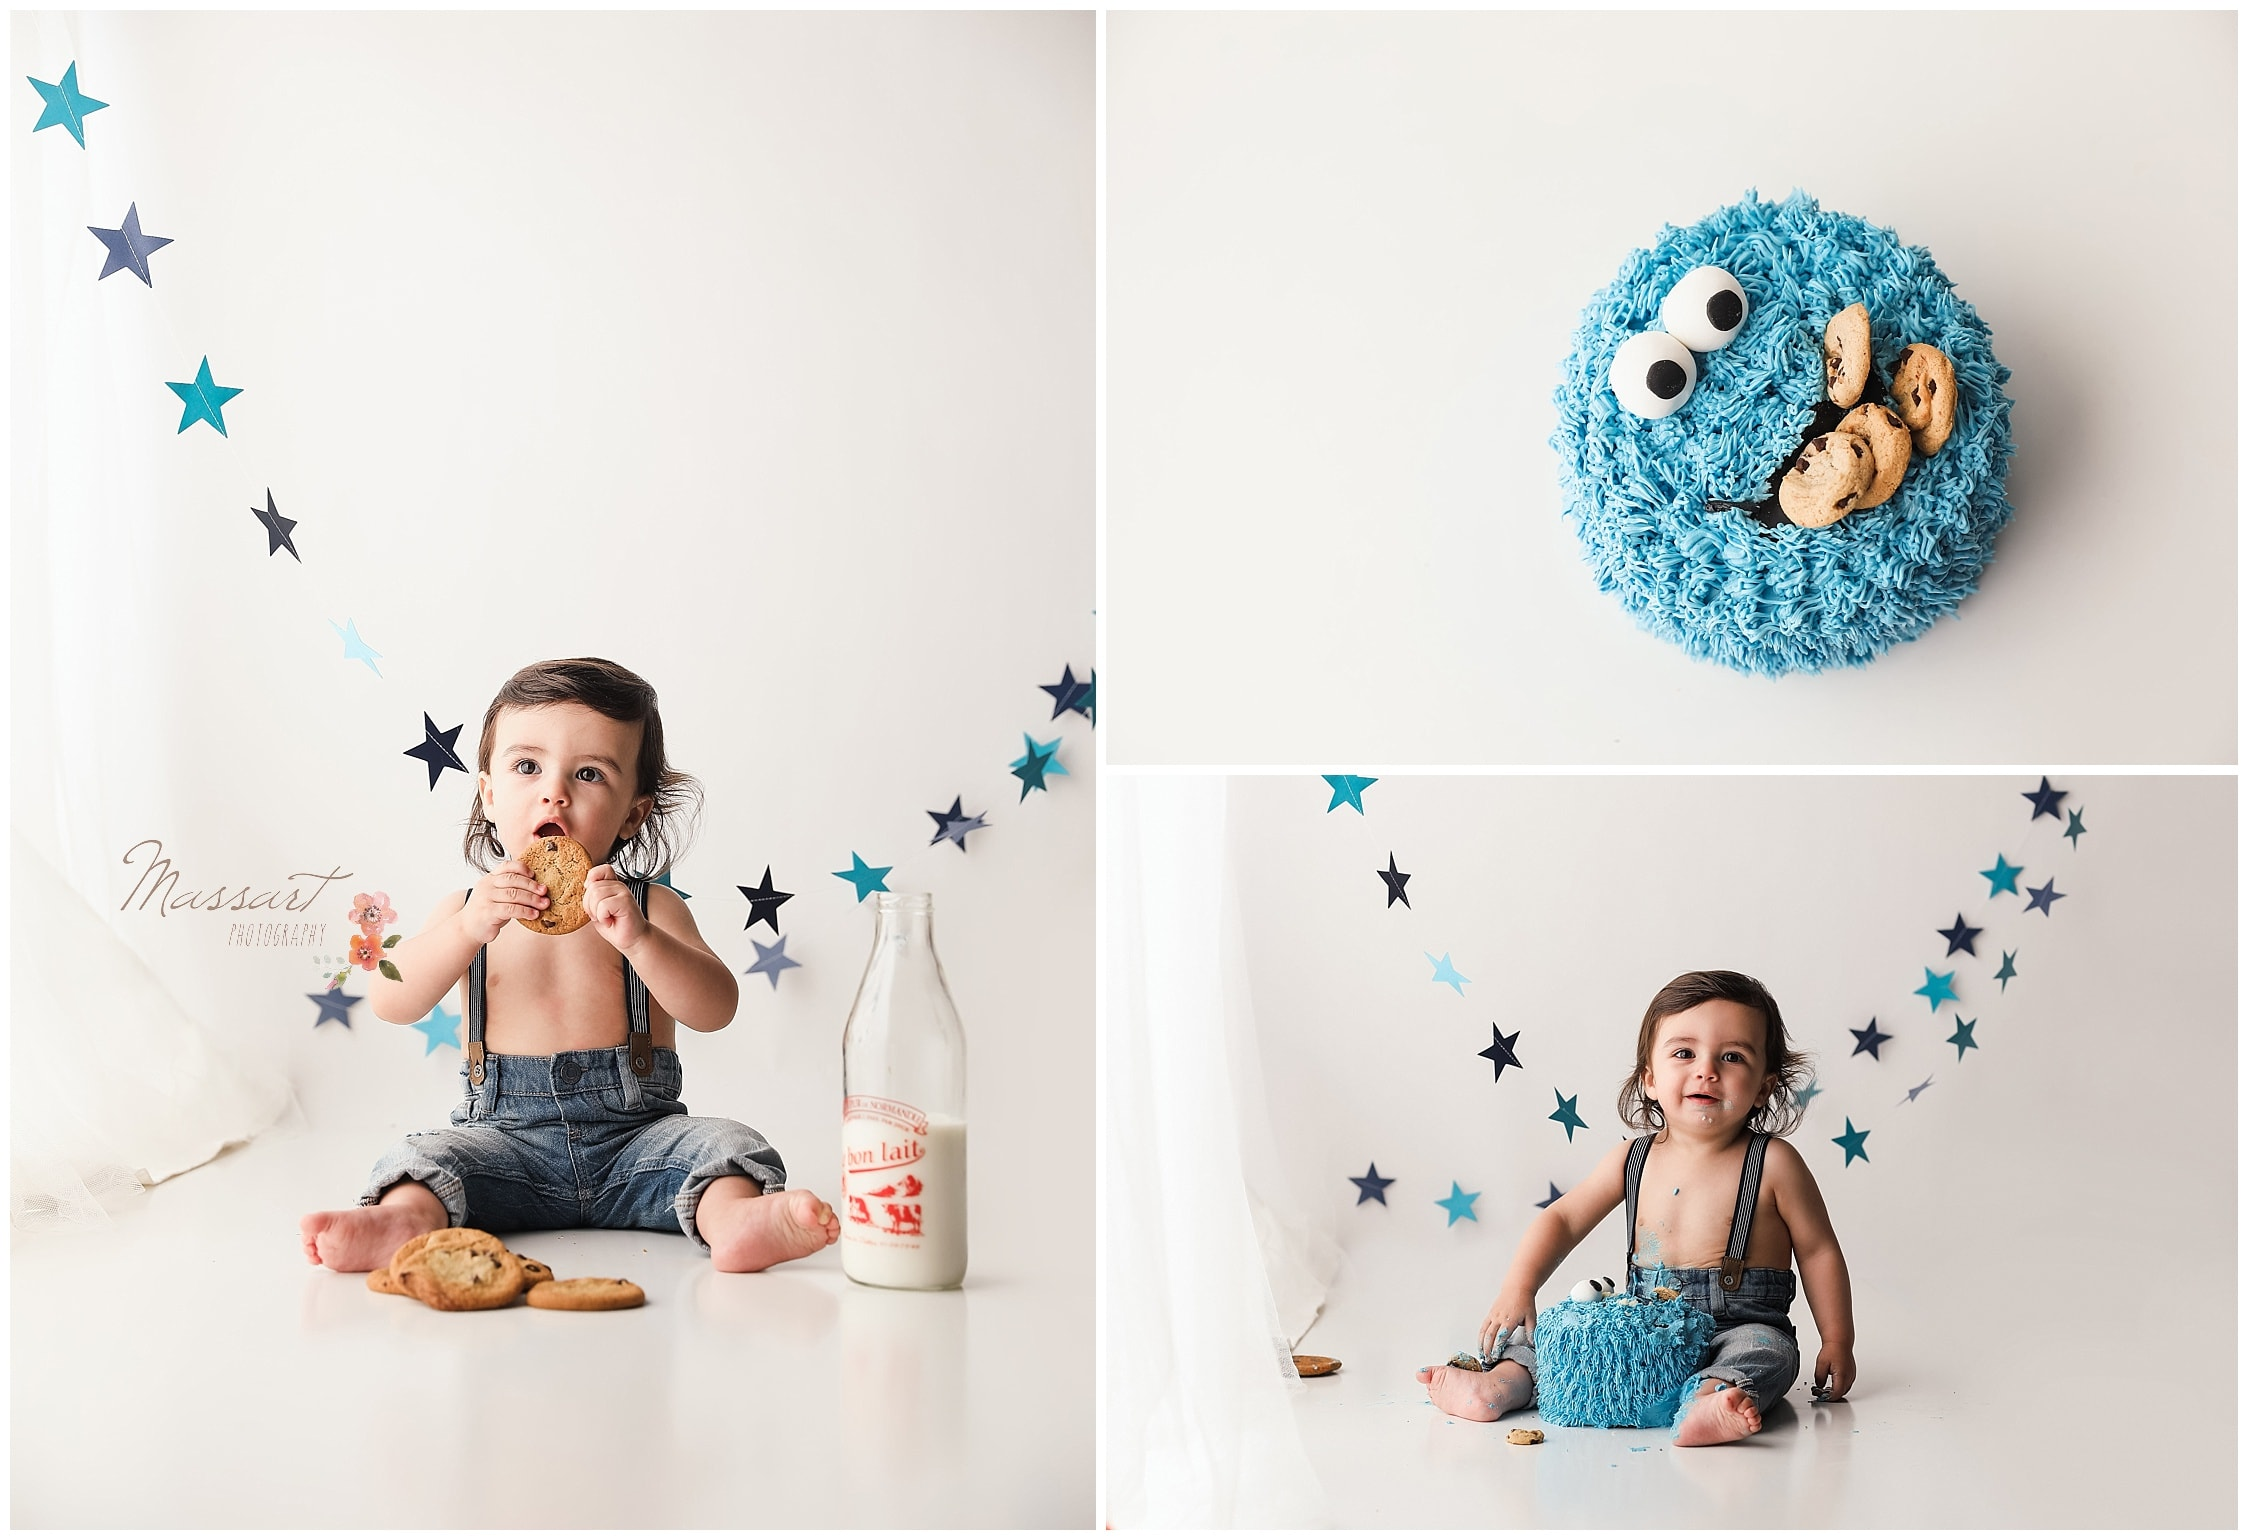 One year old celebrates his birthday with a Cookie Monster cake photographed by Massart Photography of Warwick, Rhode Island